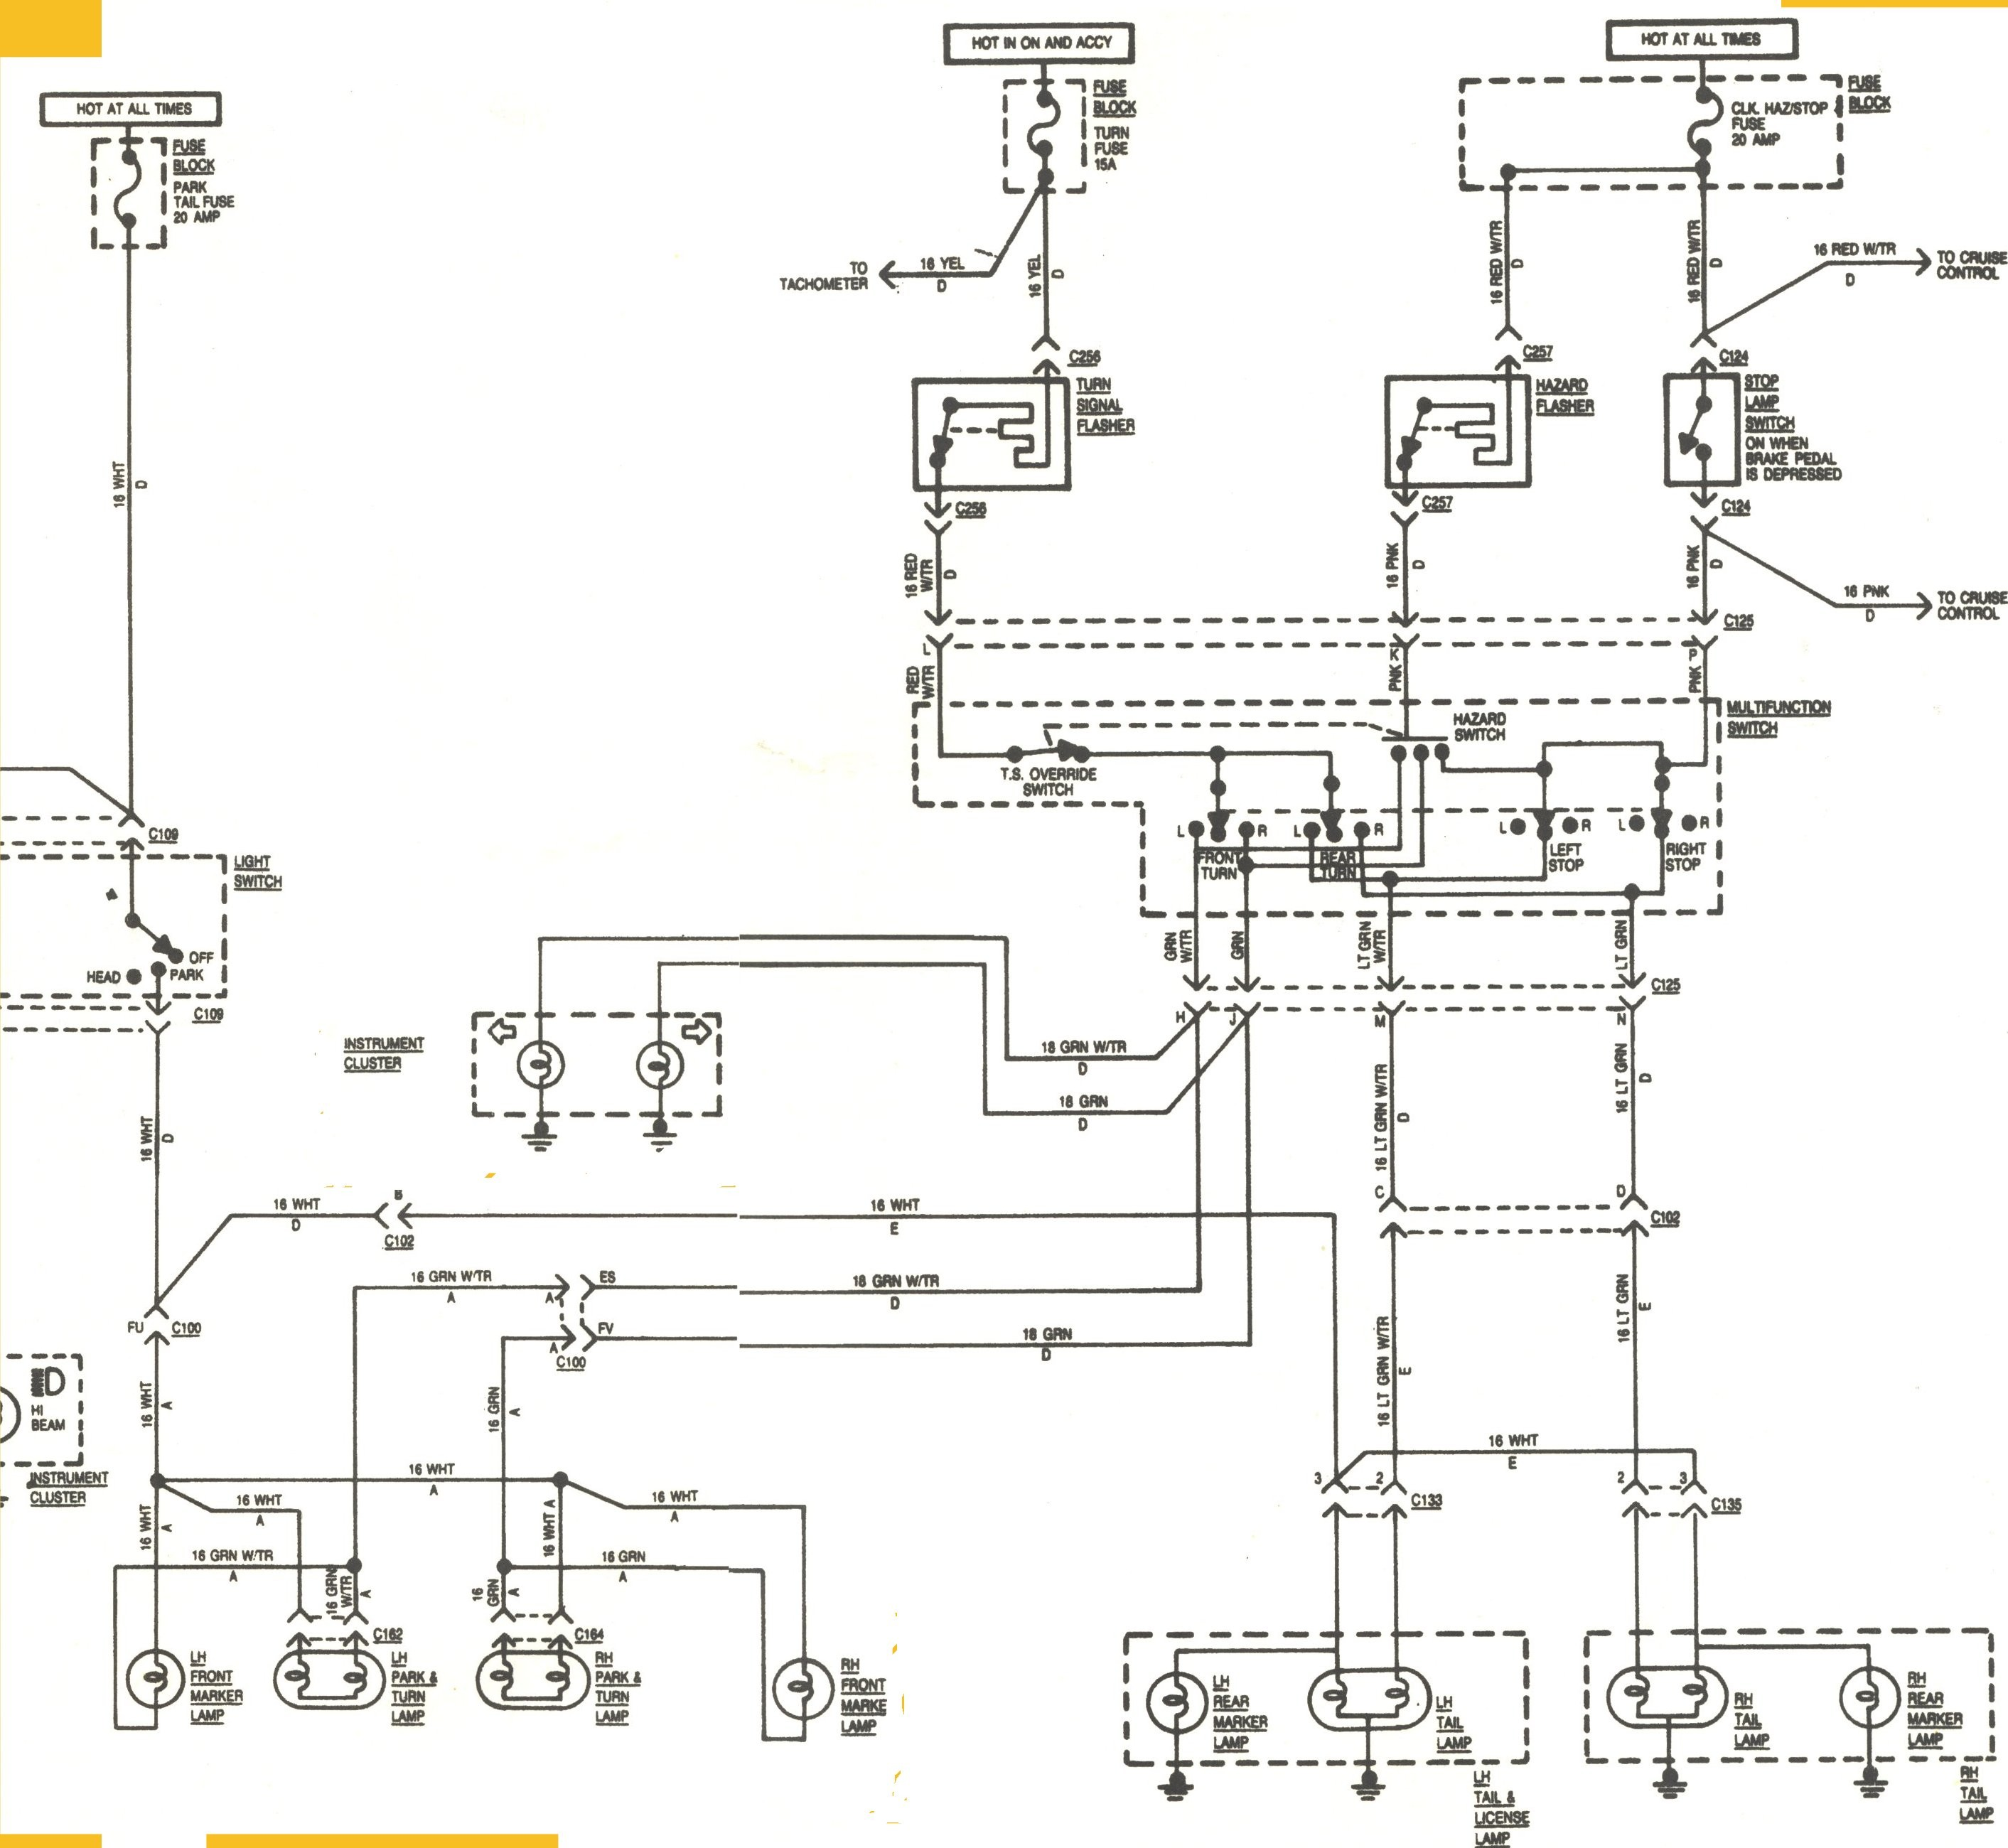 97 Jeep Wrangler Wiring Diagram Best Jeep Yj Wiring Diagram S Everything You Need to Know Of 97 Jeep Wrangler Wiring Diagram